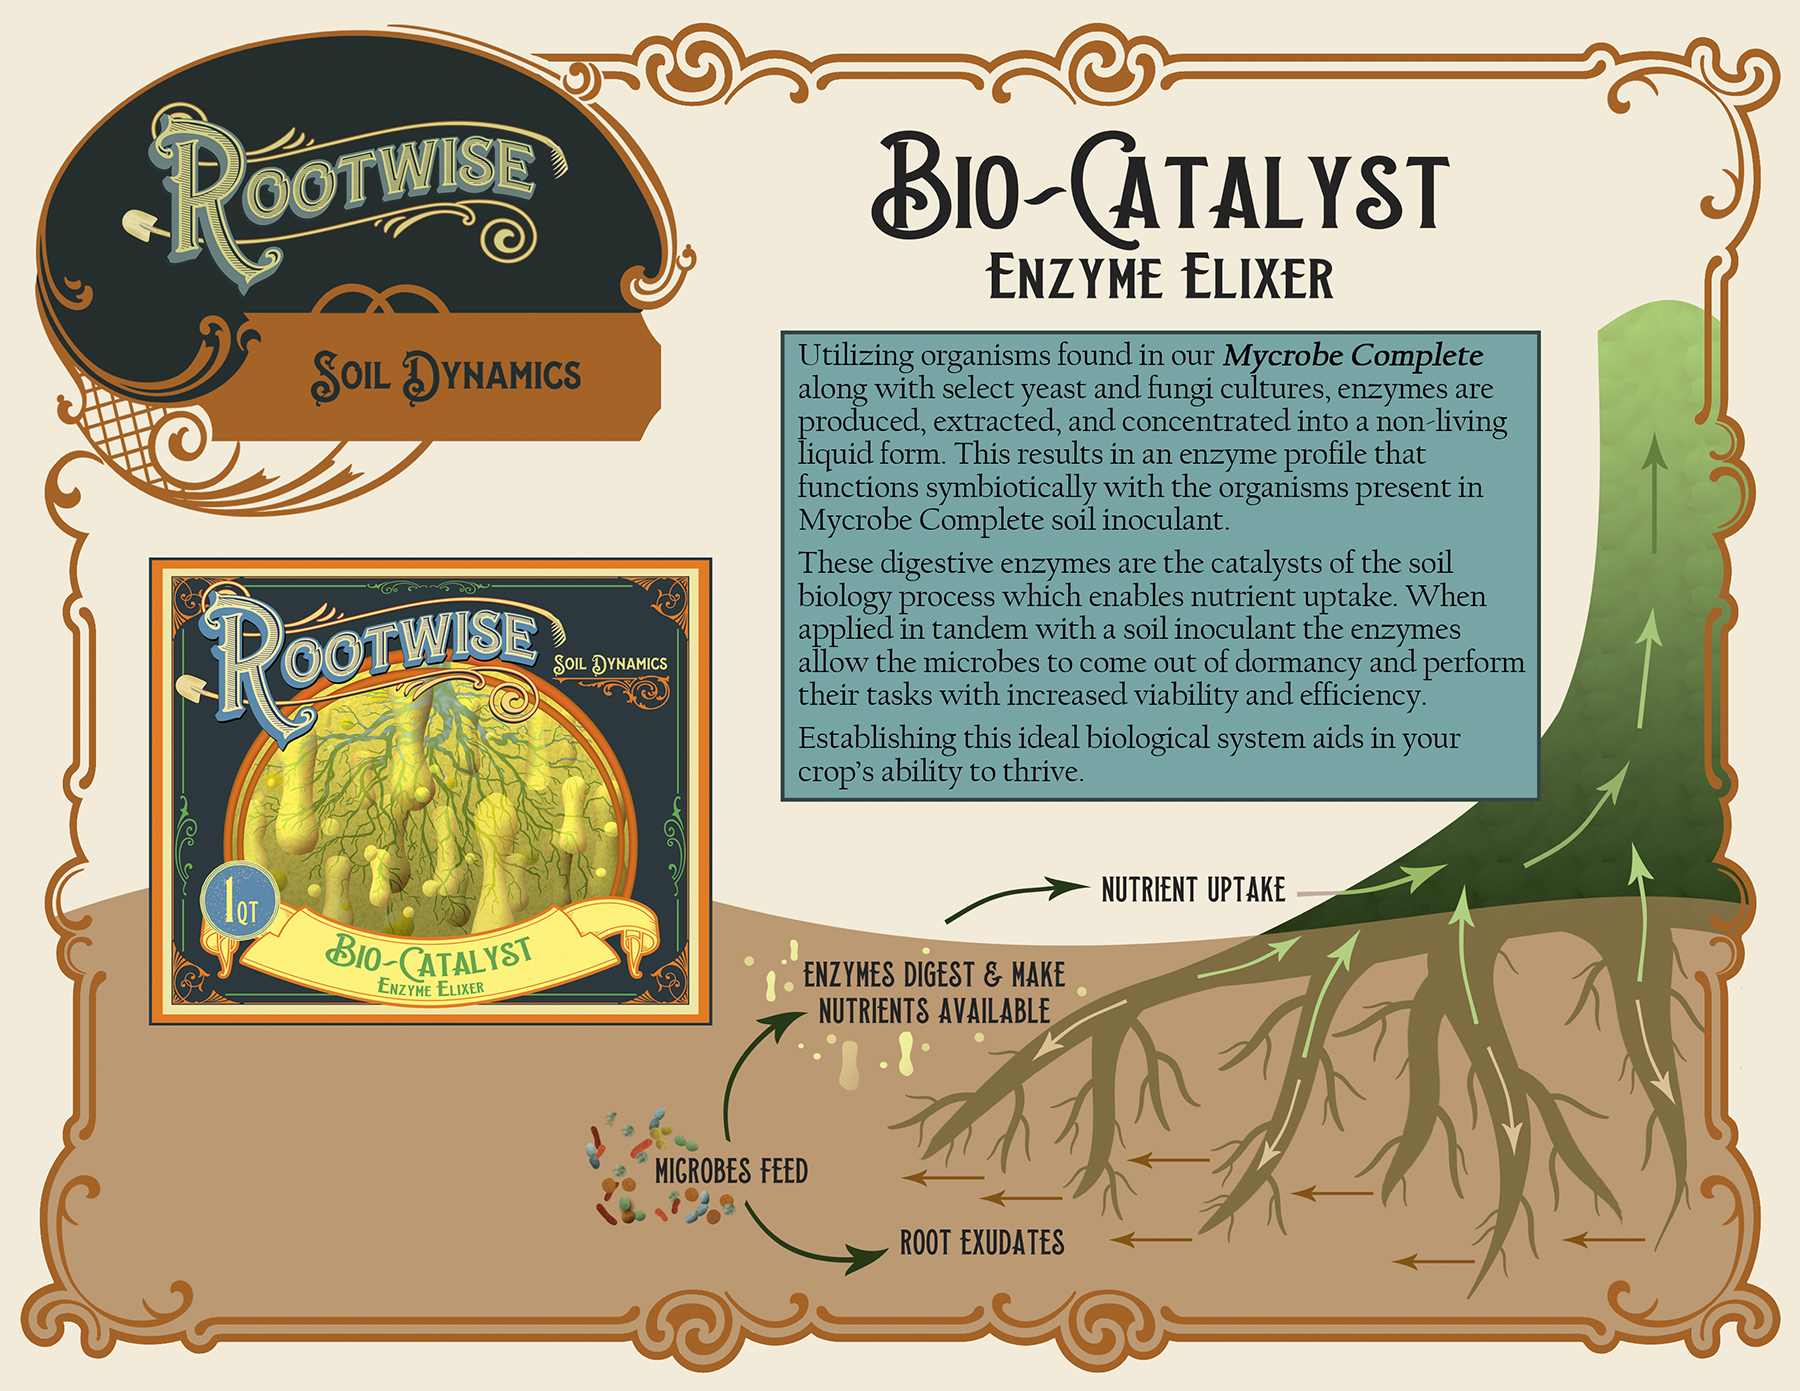 Rootwise Bio-Catalyst sheet